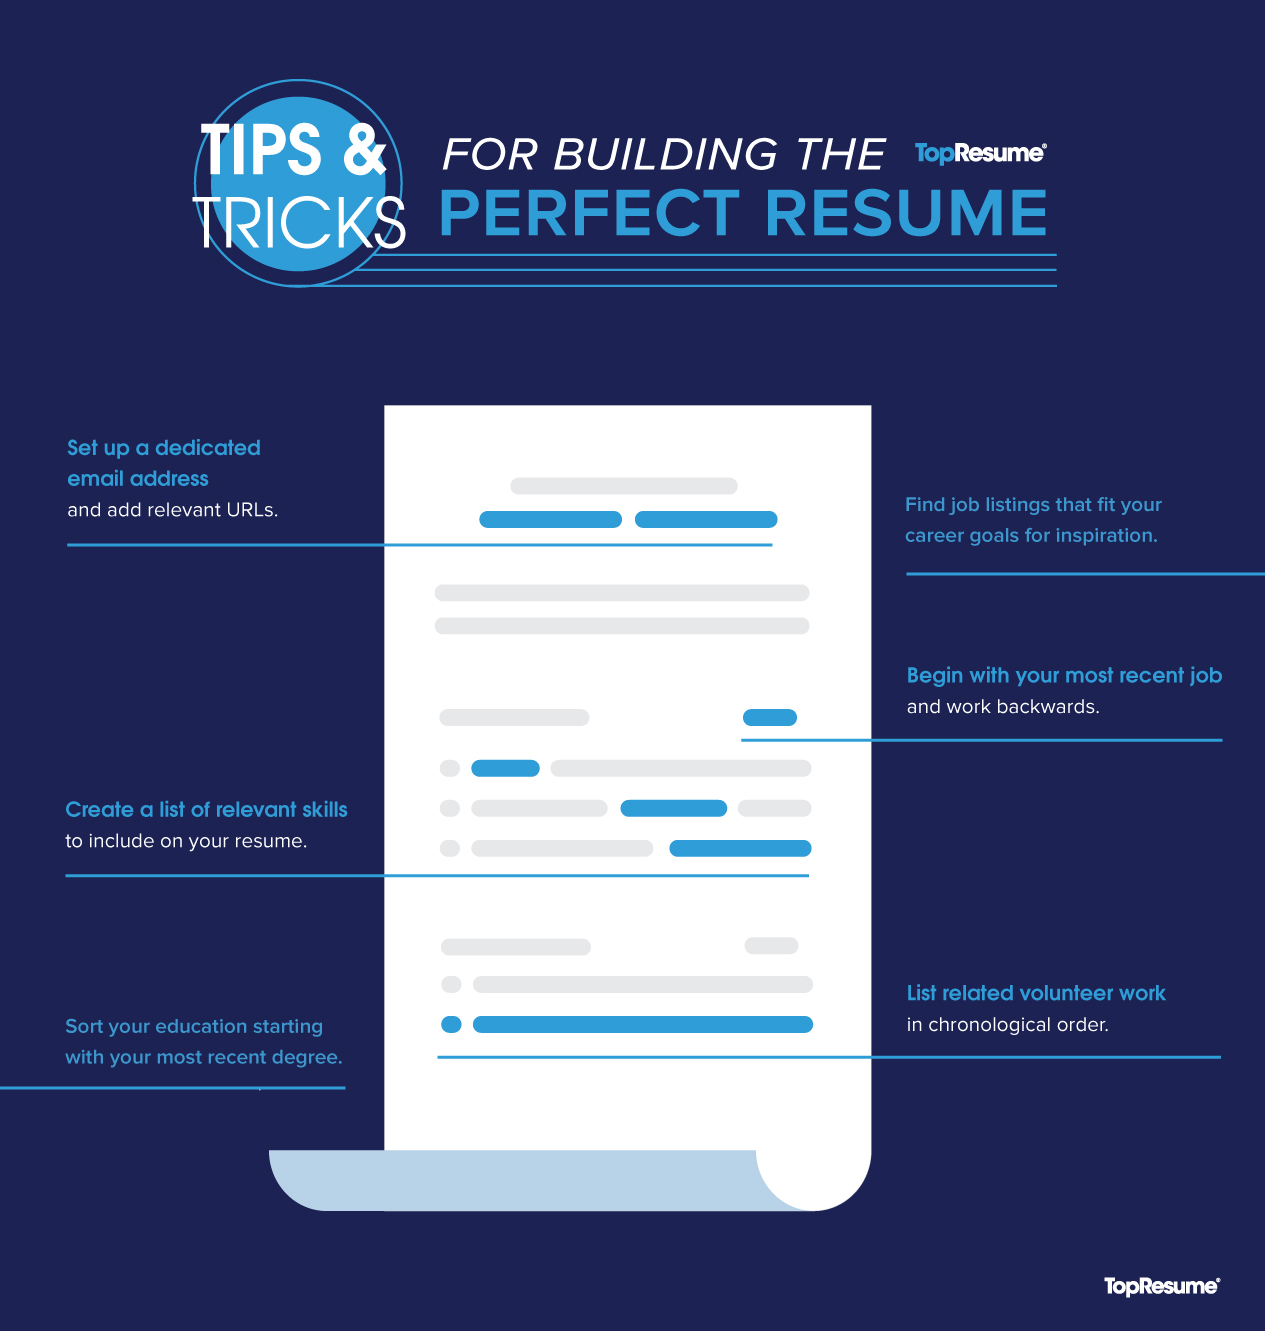 steps to writing the perfect resume topresume making 11stepsinfographic college examples Resume Making The Perfect Resume